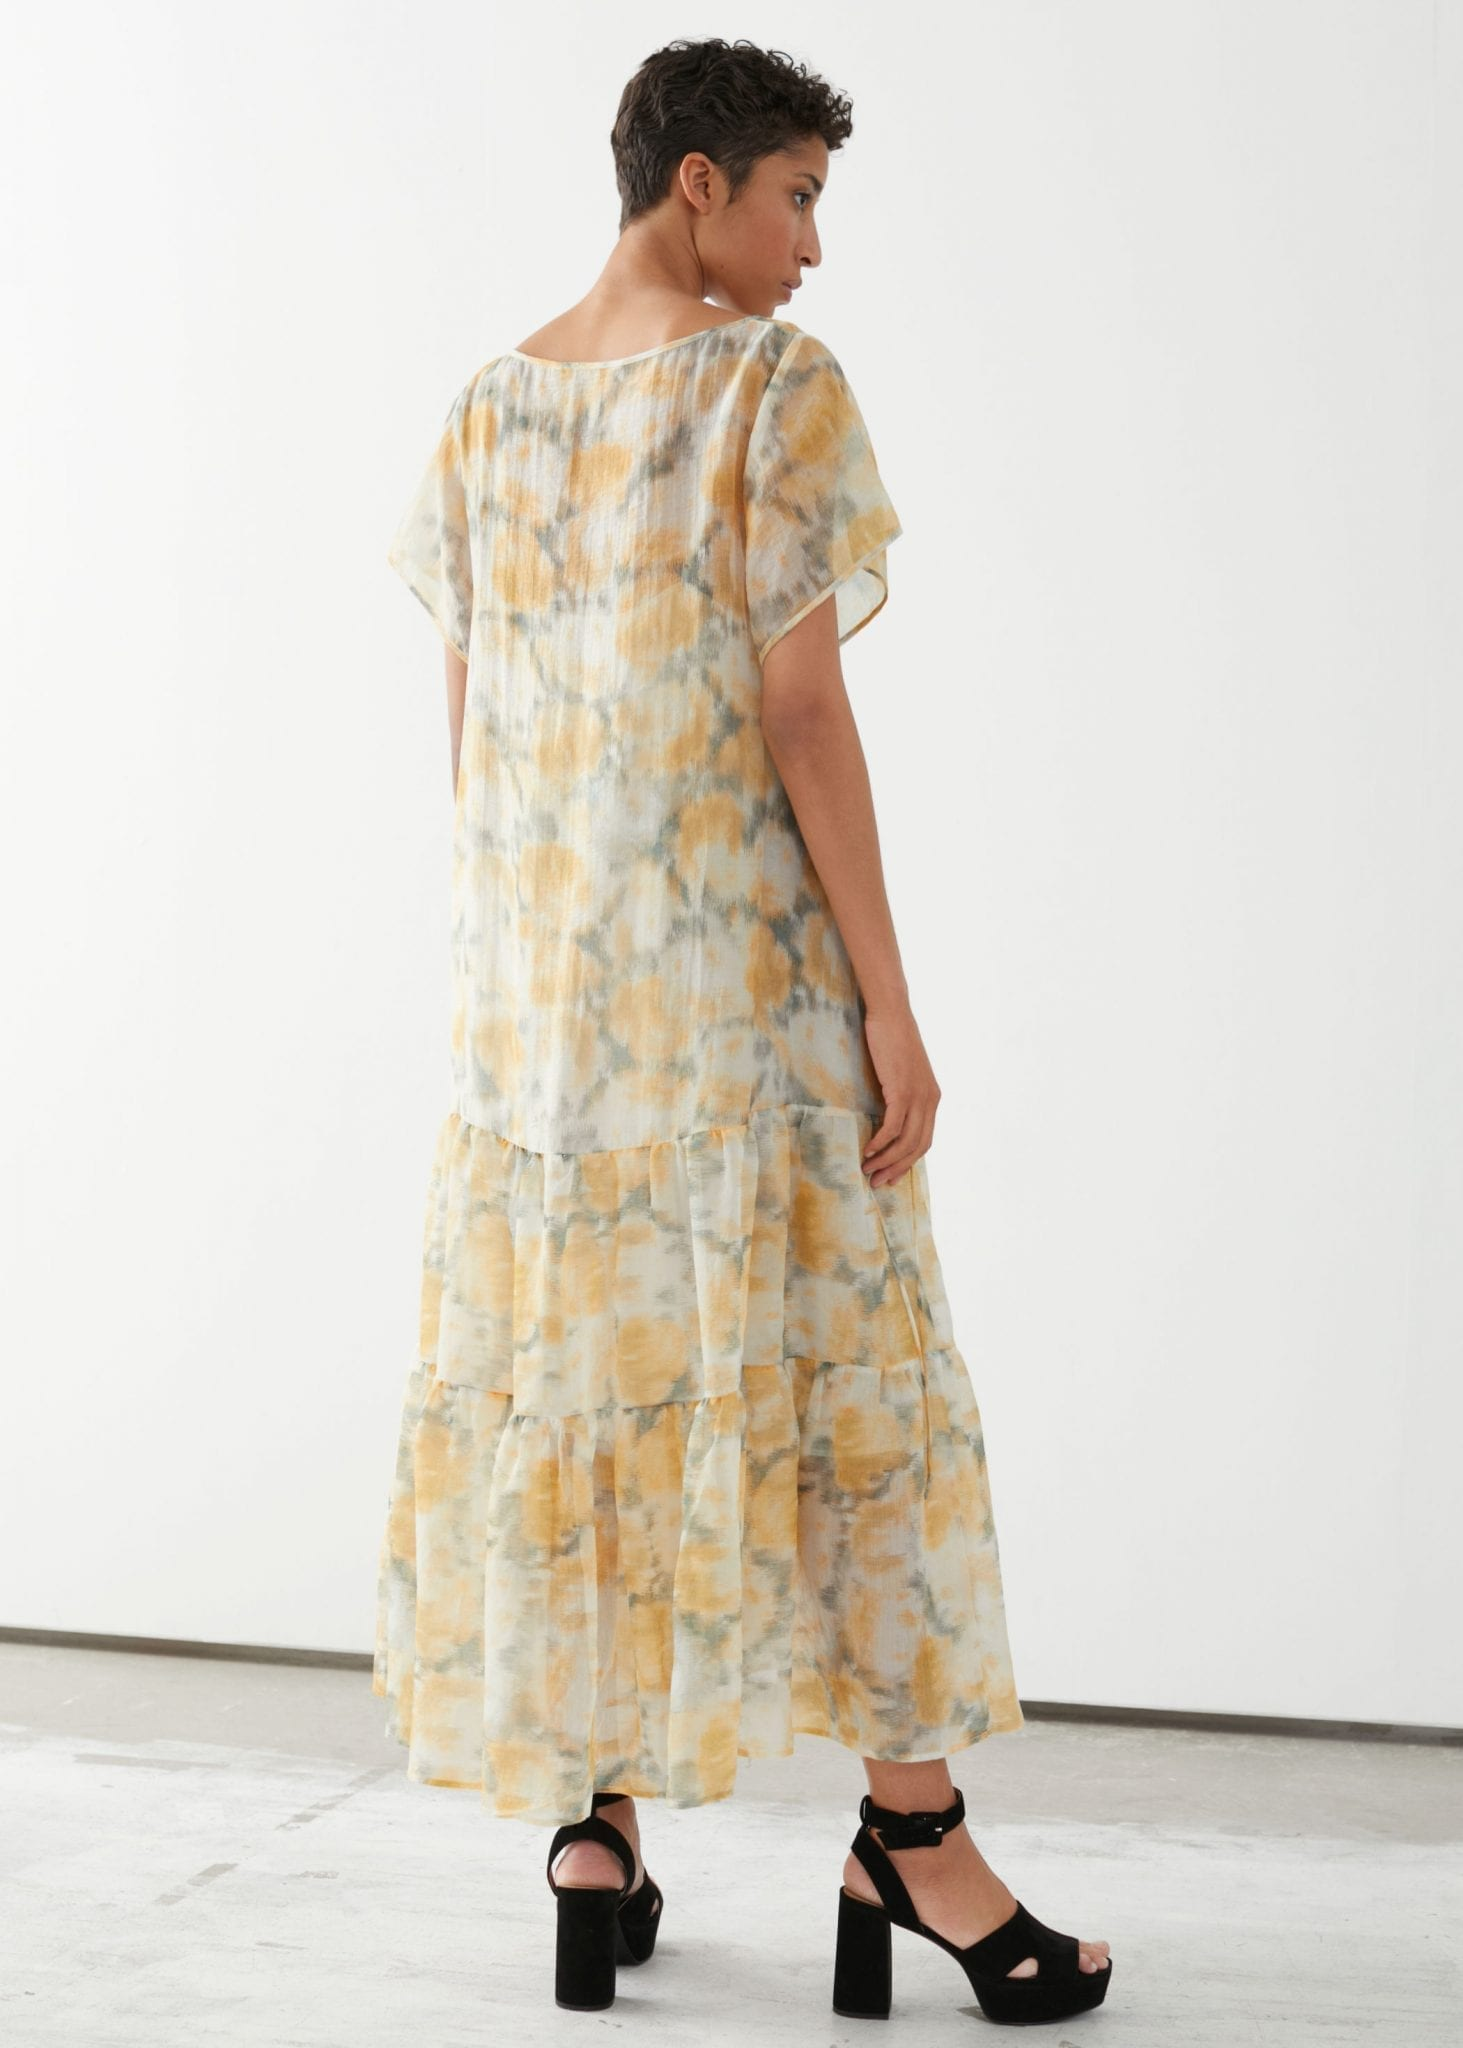 OTHER STORIES Sheer Lyocell Blend Maxi Dress